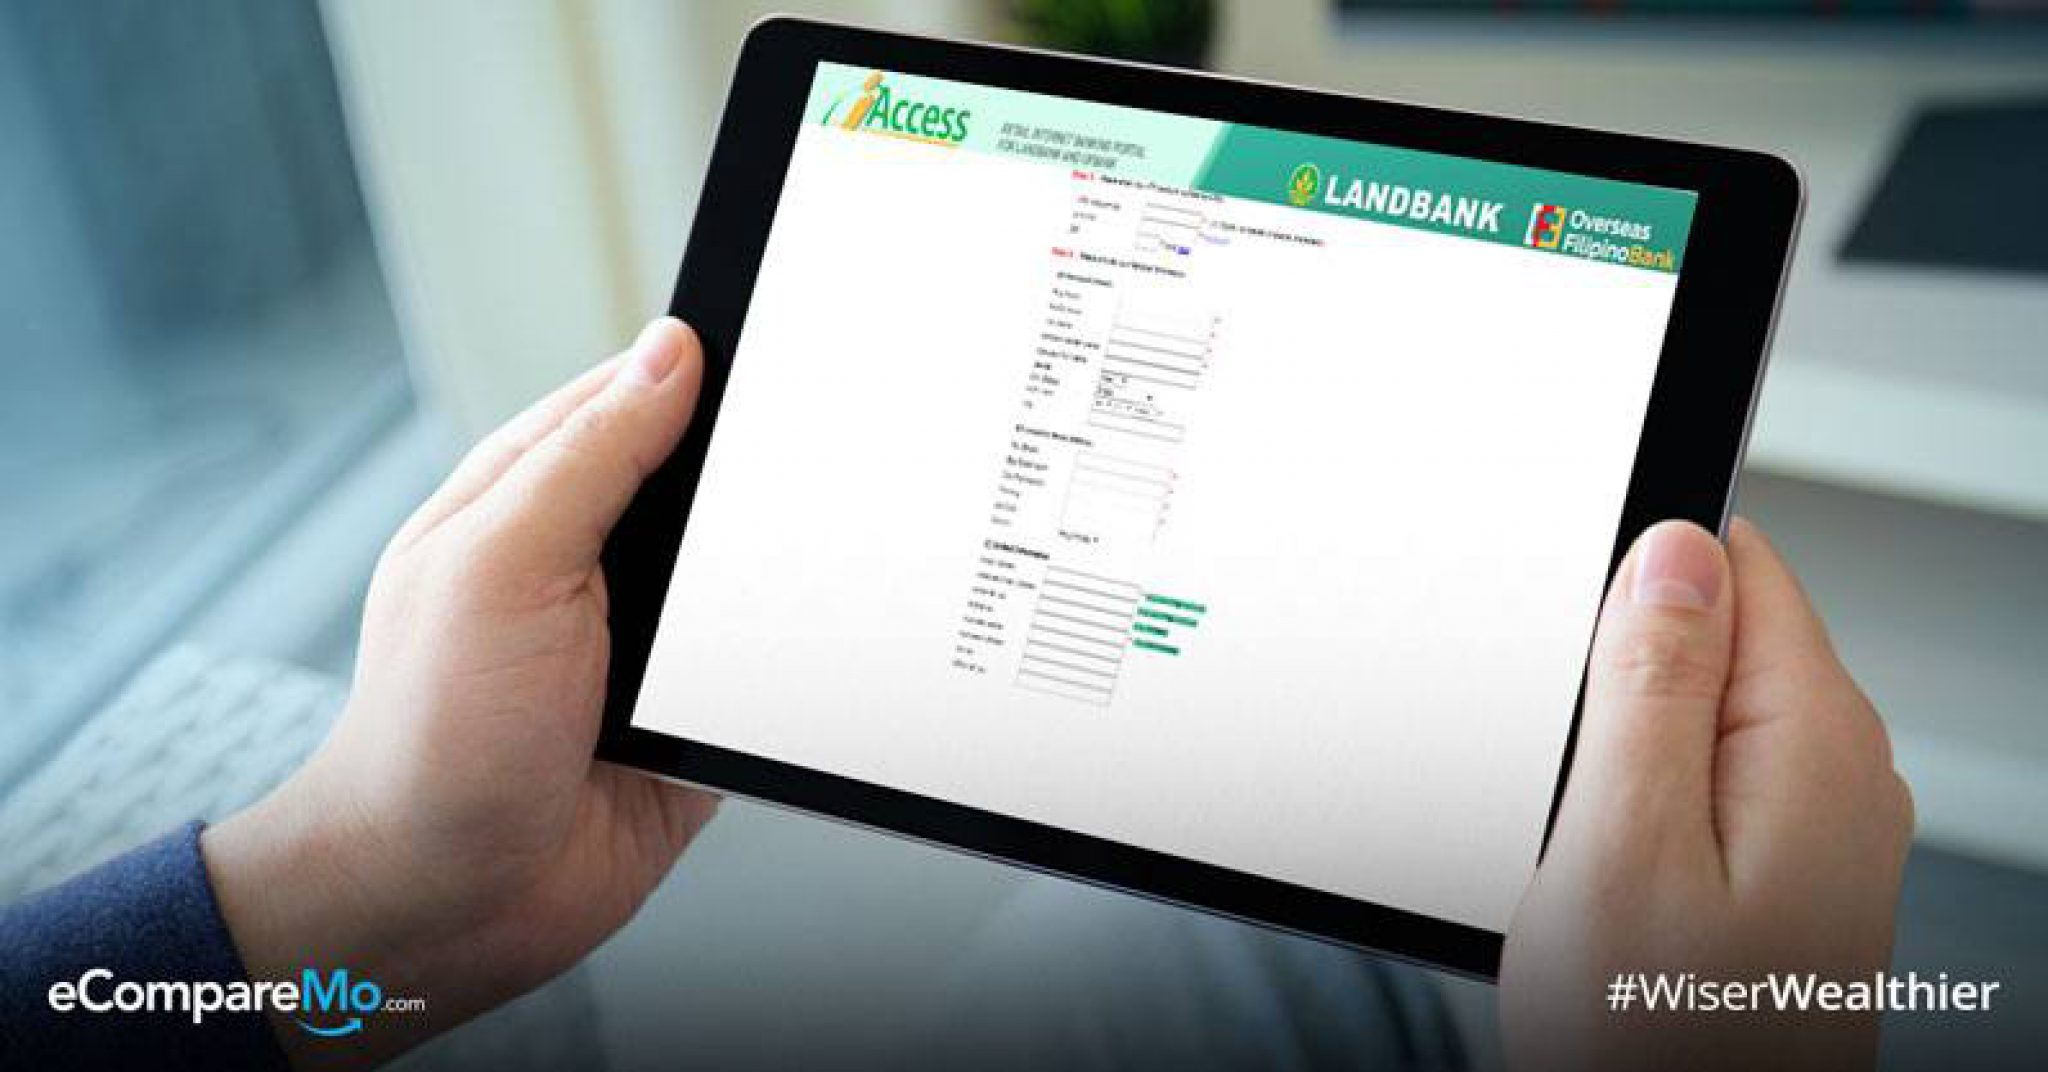 Landbank iAccess